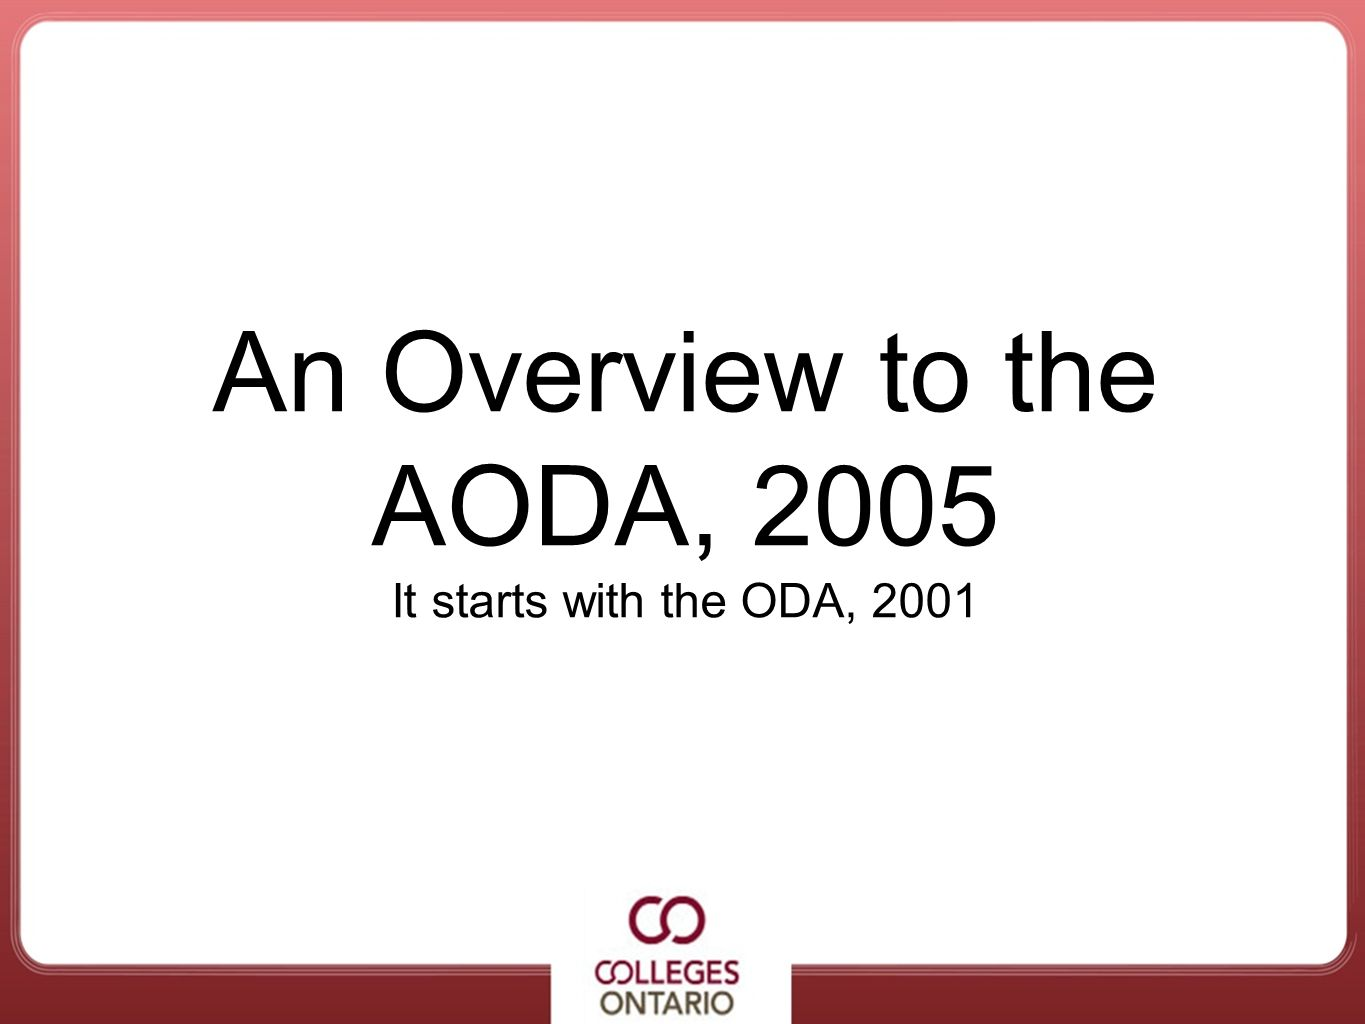 An Overview to the AODA, 2005 It starts with the ODA, 2001